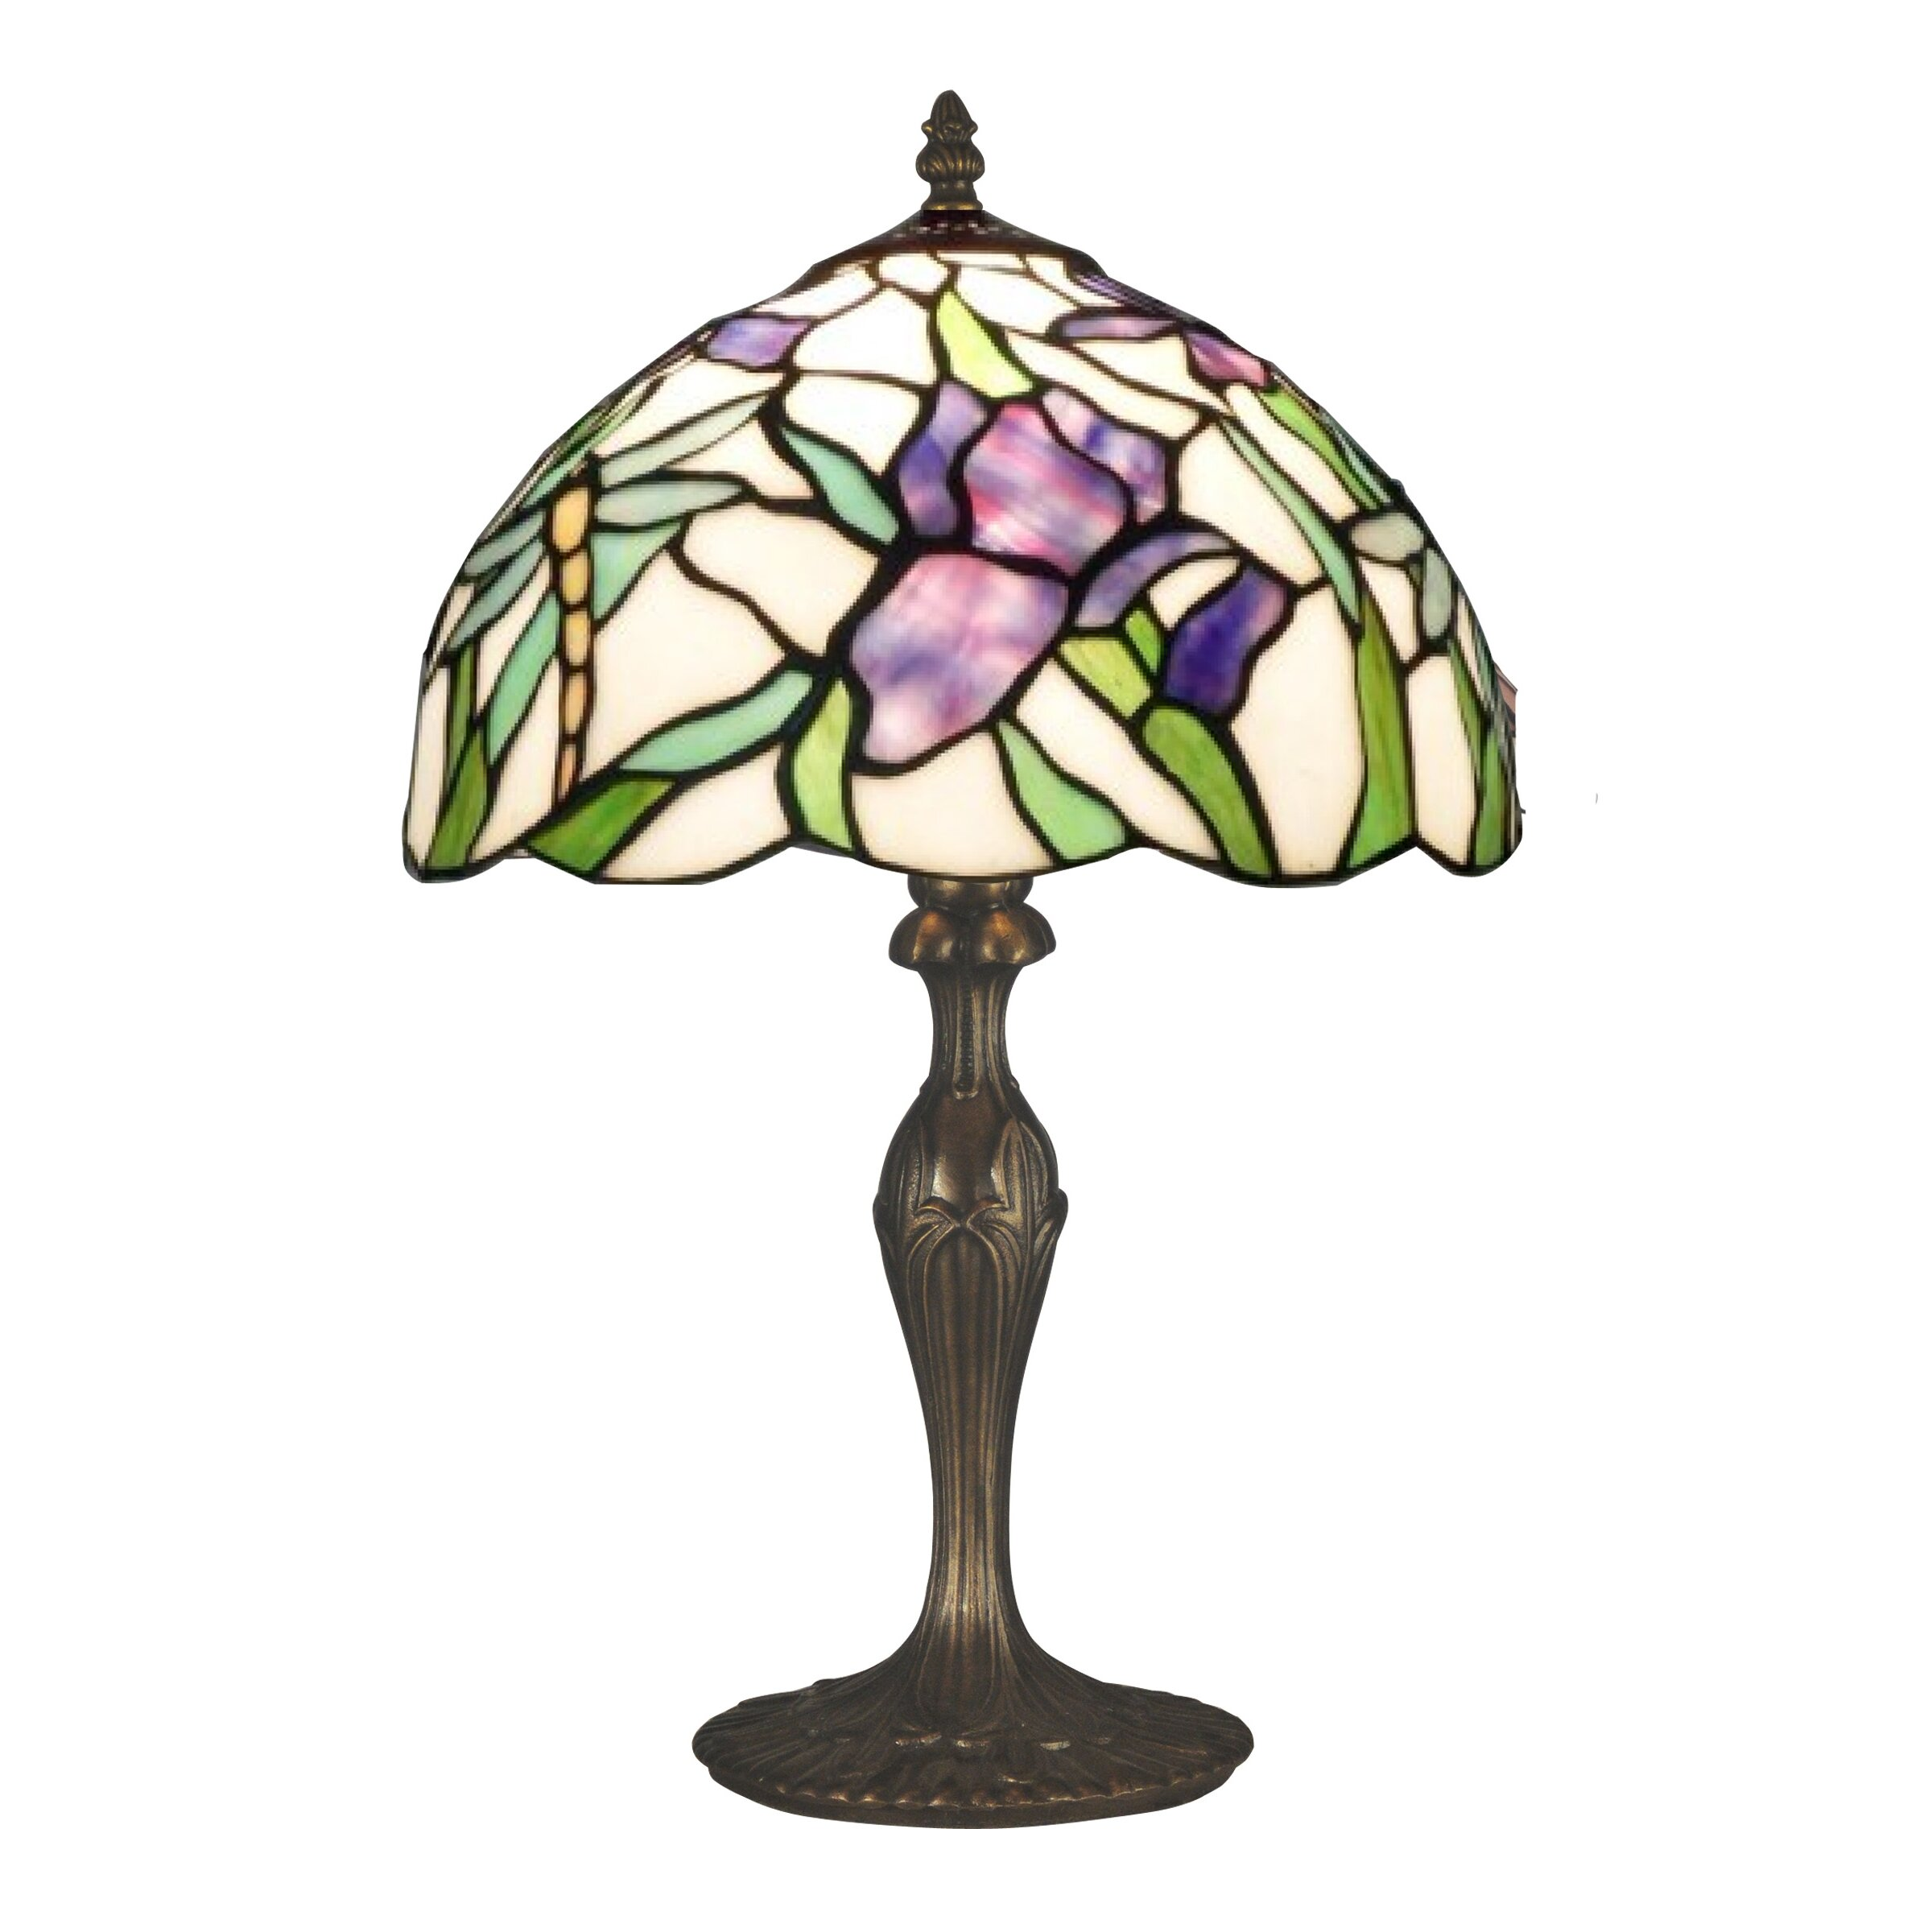 Dale tiffany table lamps - Lighting Lamps Bronze Table Lamps Dale Tiffany Sku Dt3724